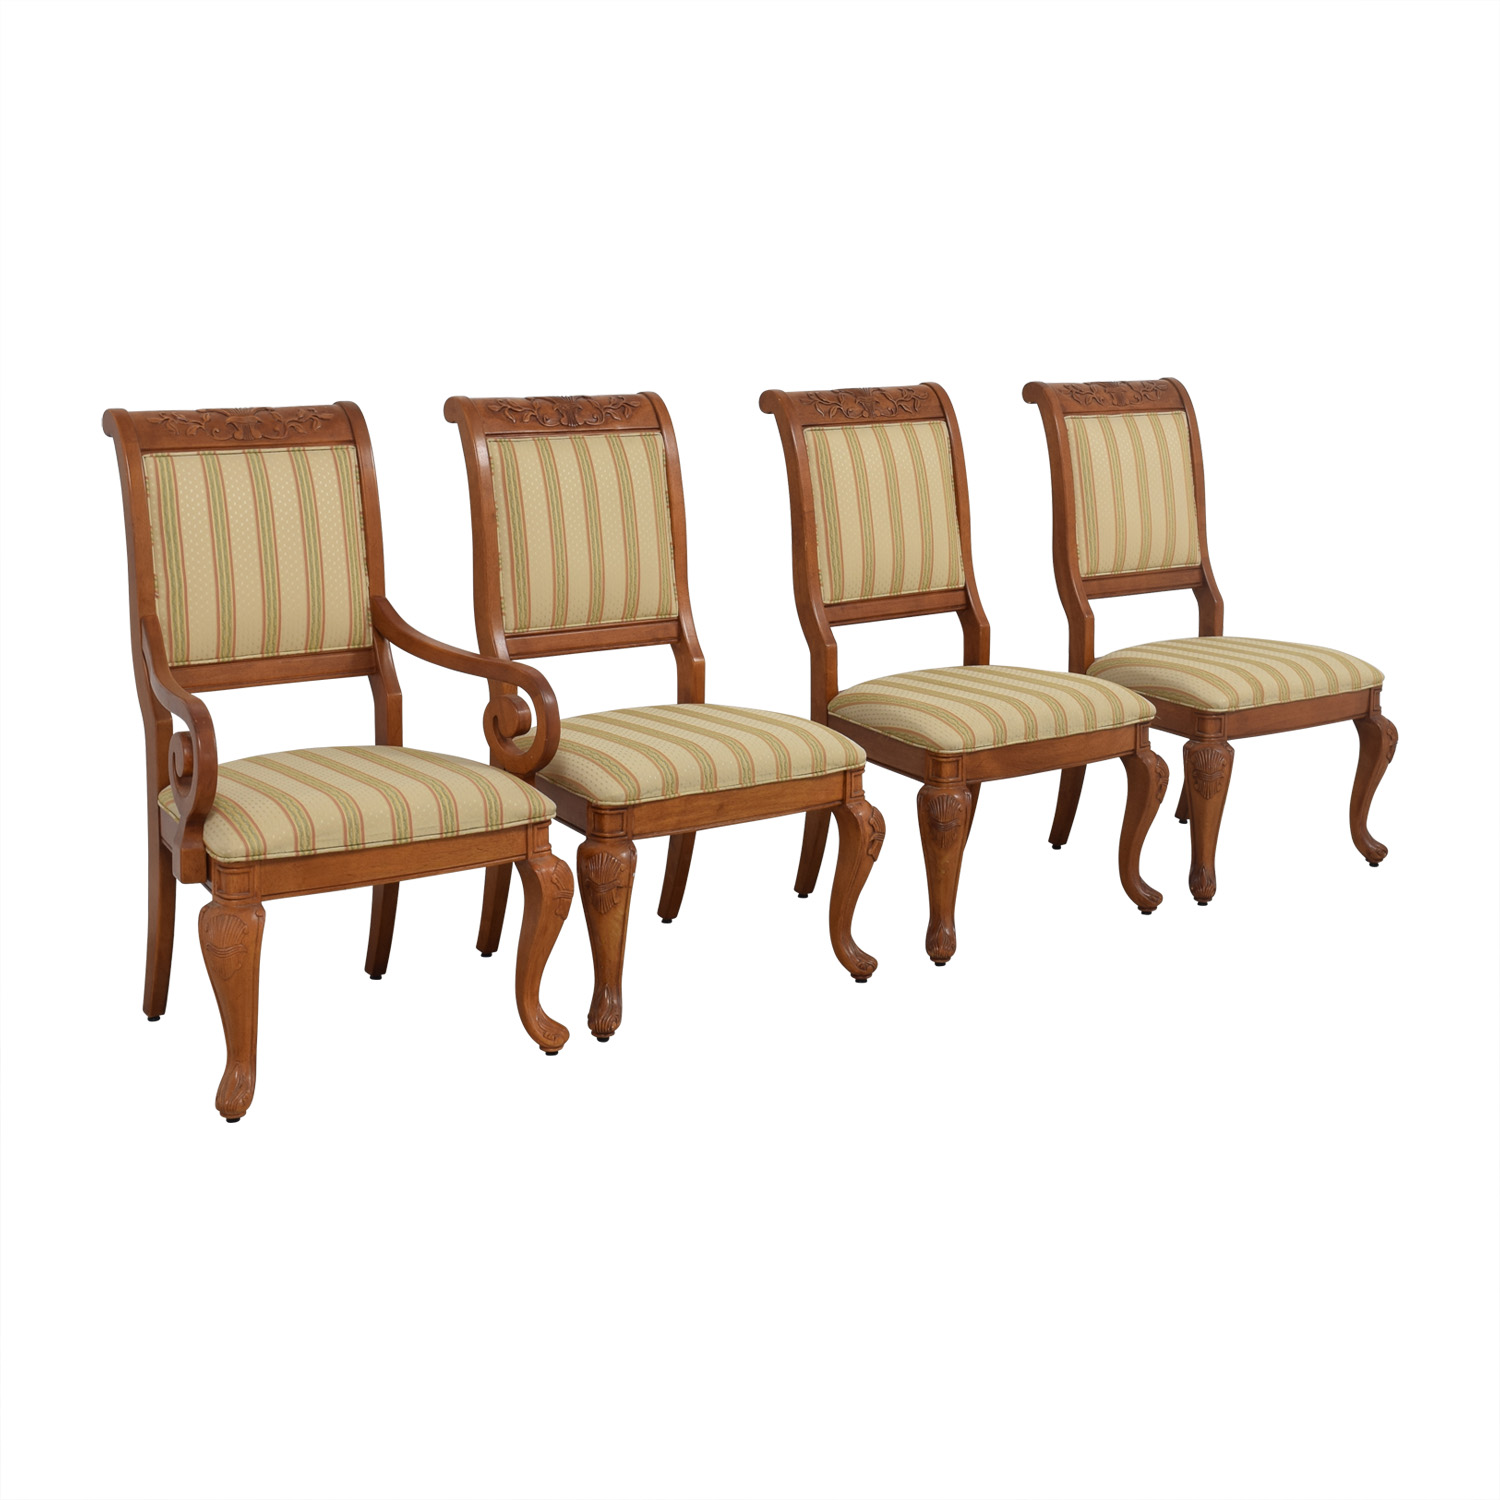 Furniture Masters Furniture Masters Striped Upholstered Carved Dining Chairs dimensions